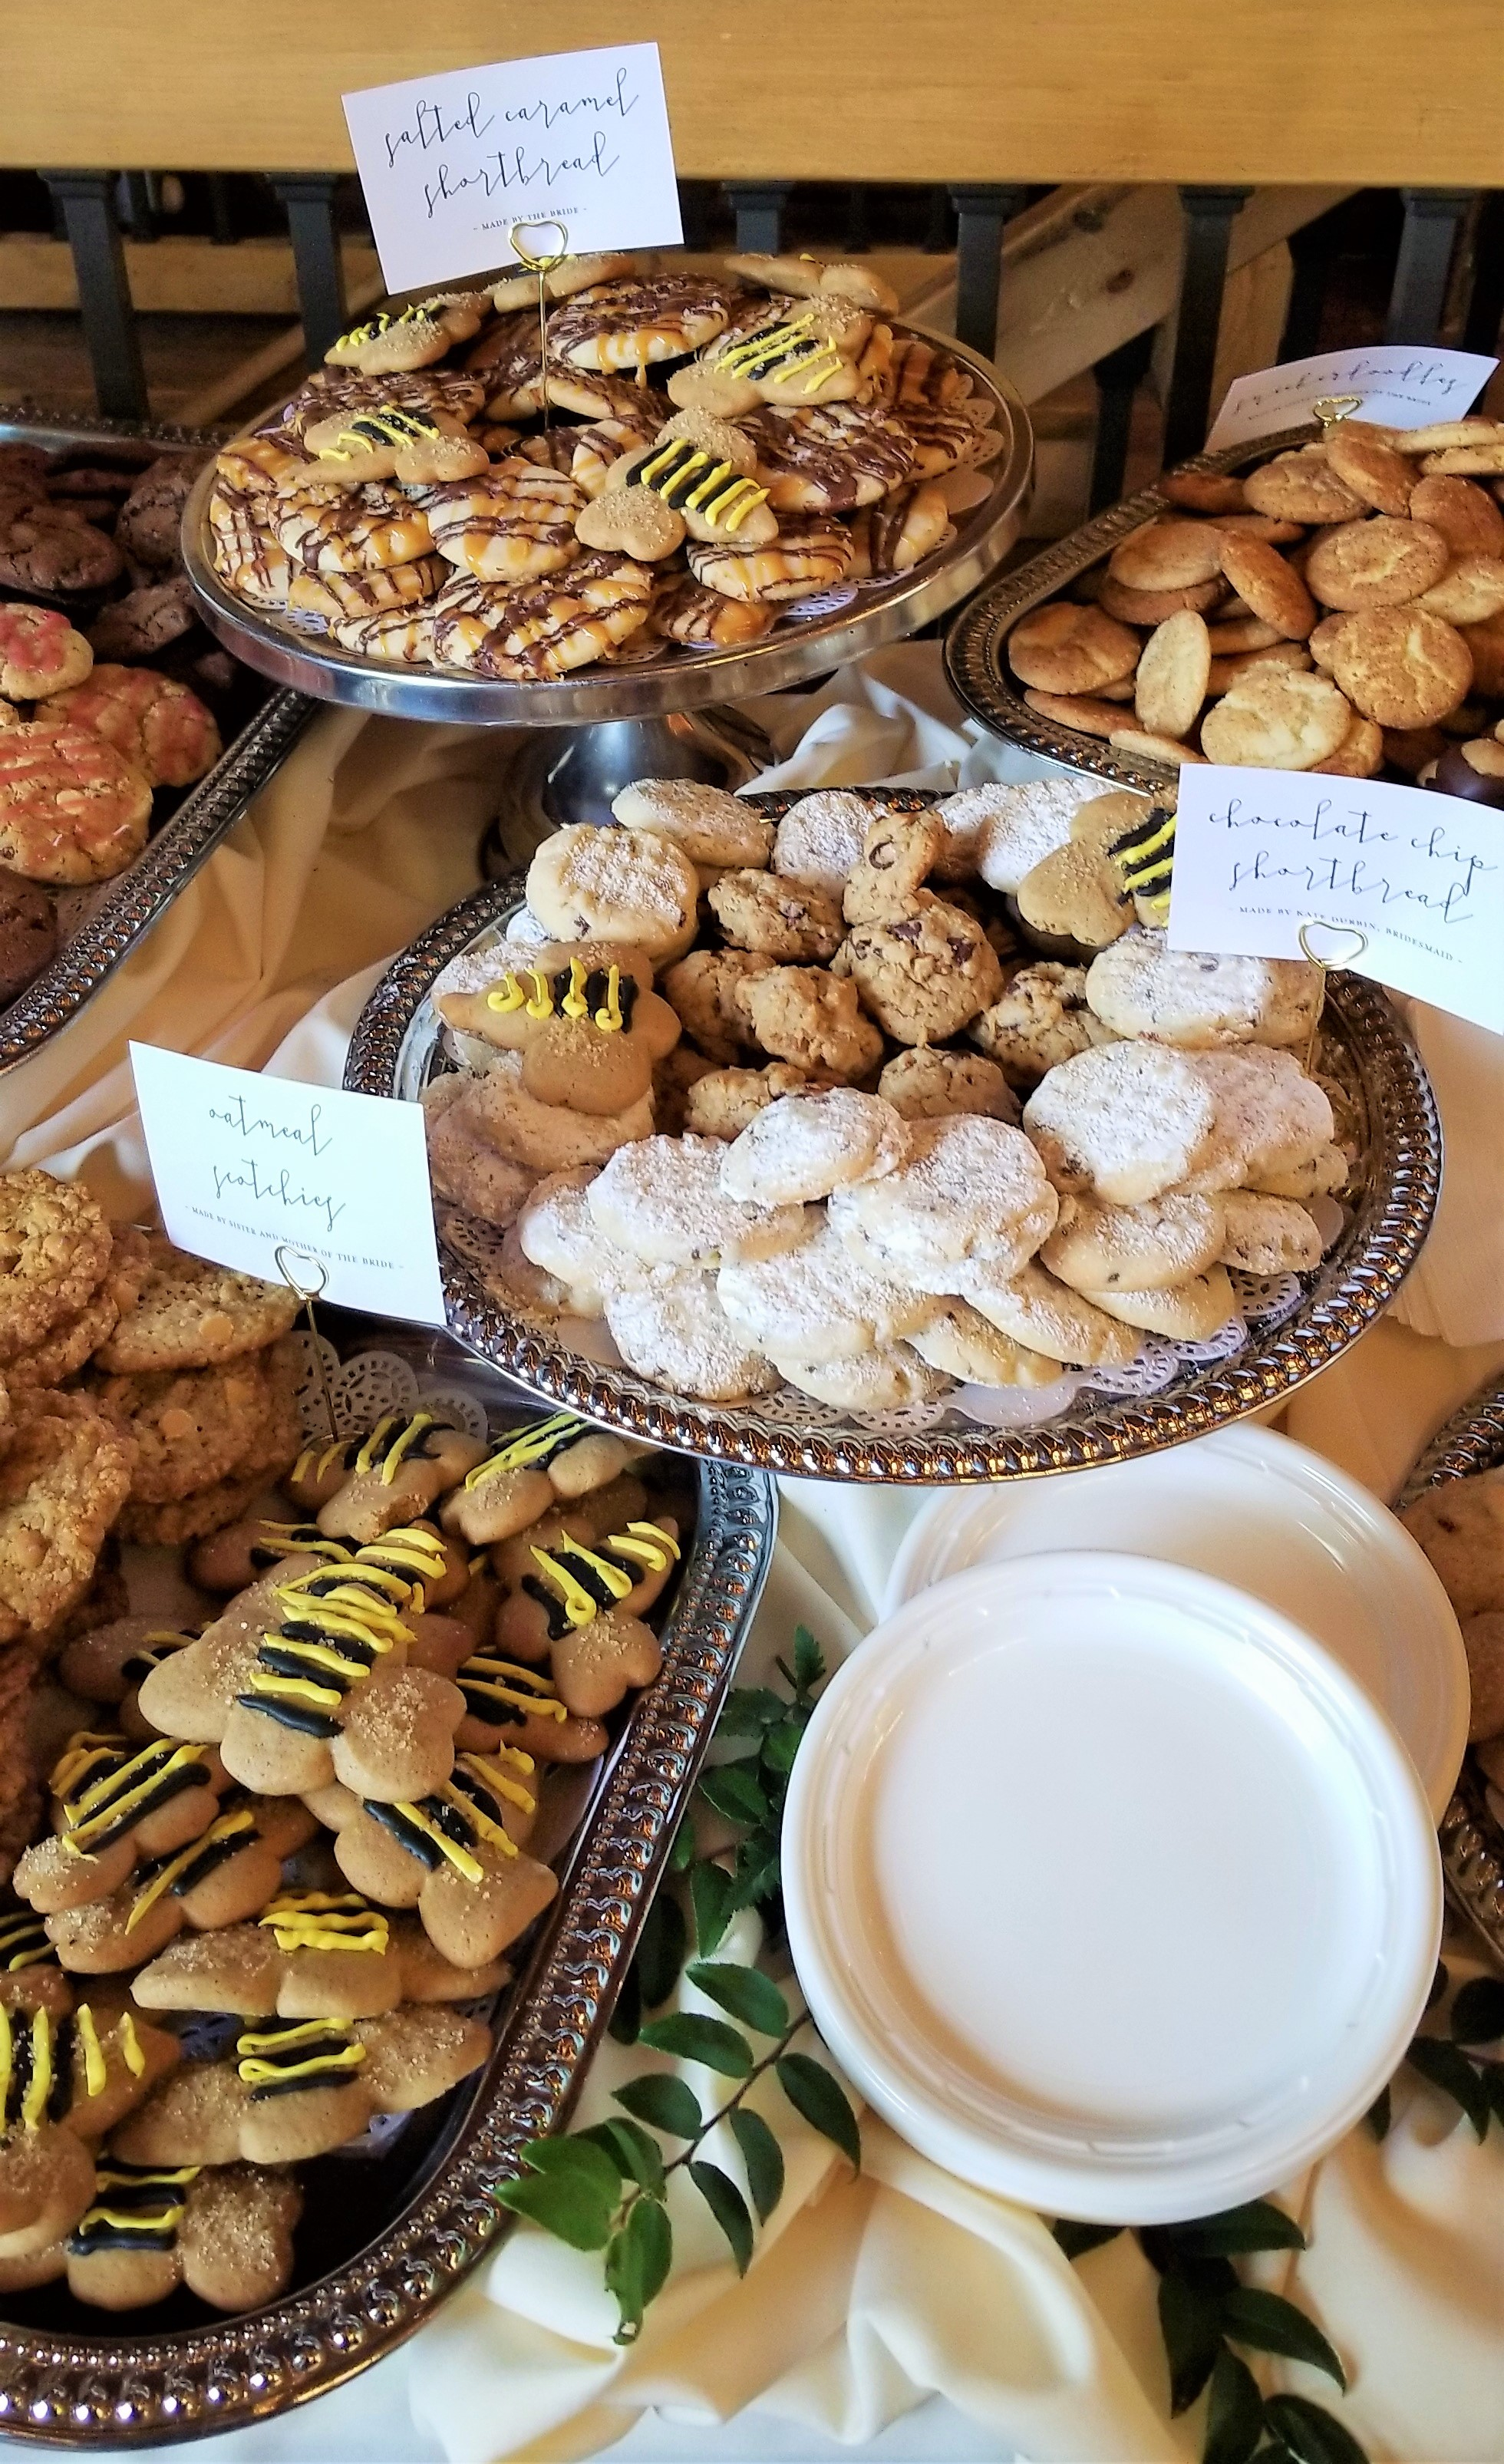 Salted Caramel Shortbread, Snickerdoodles, Chocolate Chip Shortbread, Oatmeal Scotchies, Spiced Bees tore up the cookie runway!